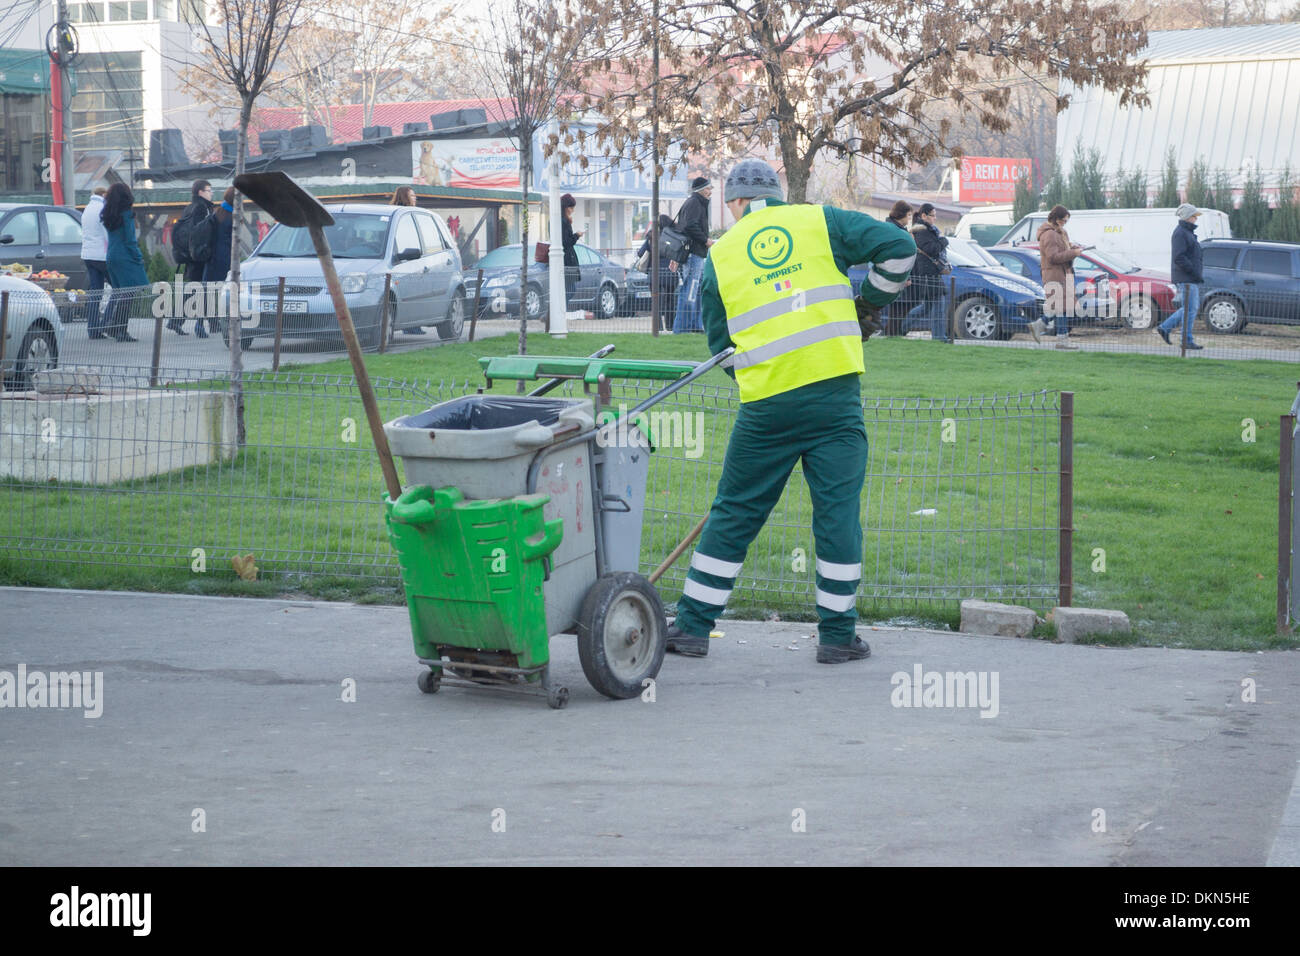 Garbage man cleaning up in front of Aurel Vlaicu subway station, in Bucharest, Romania - Stock Image